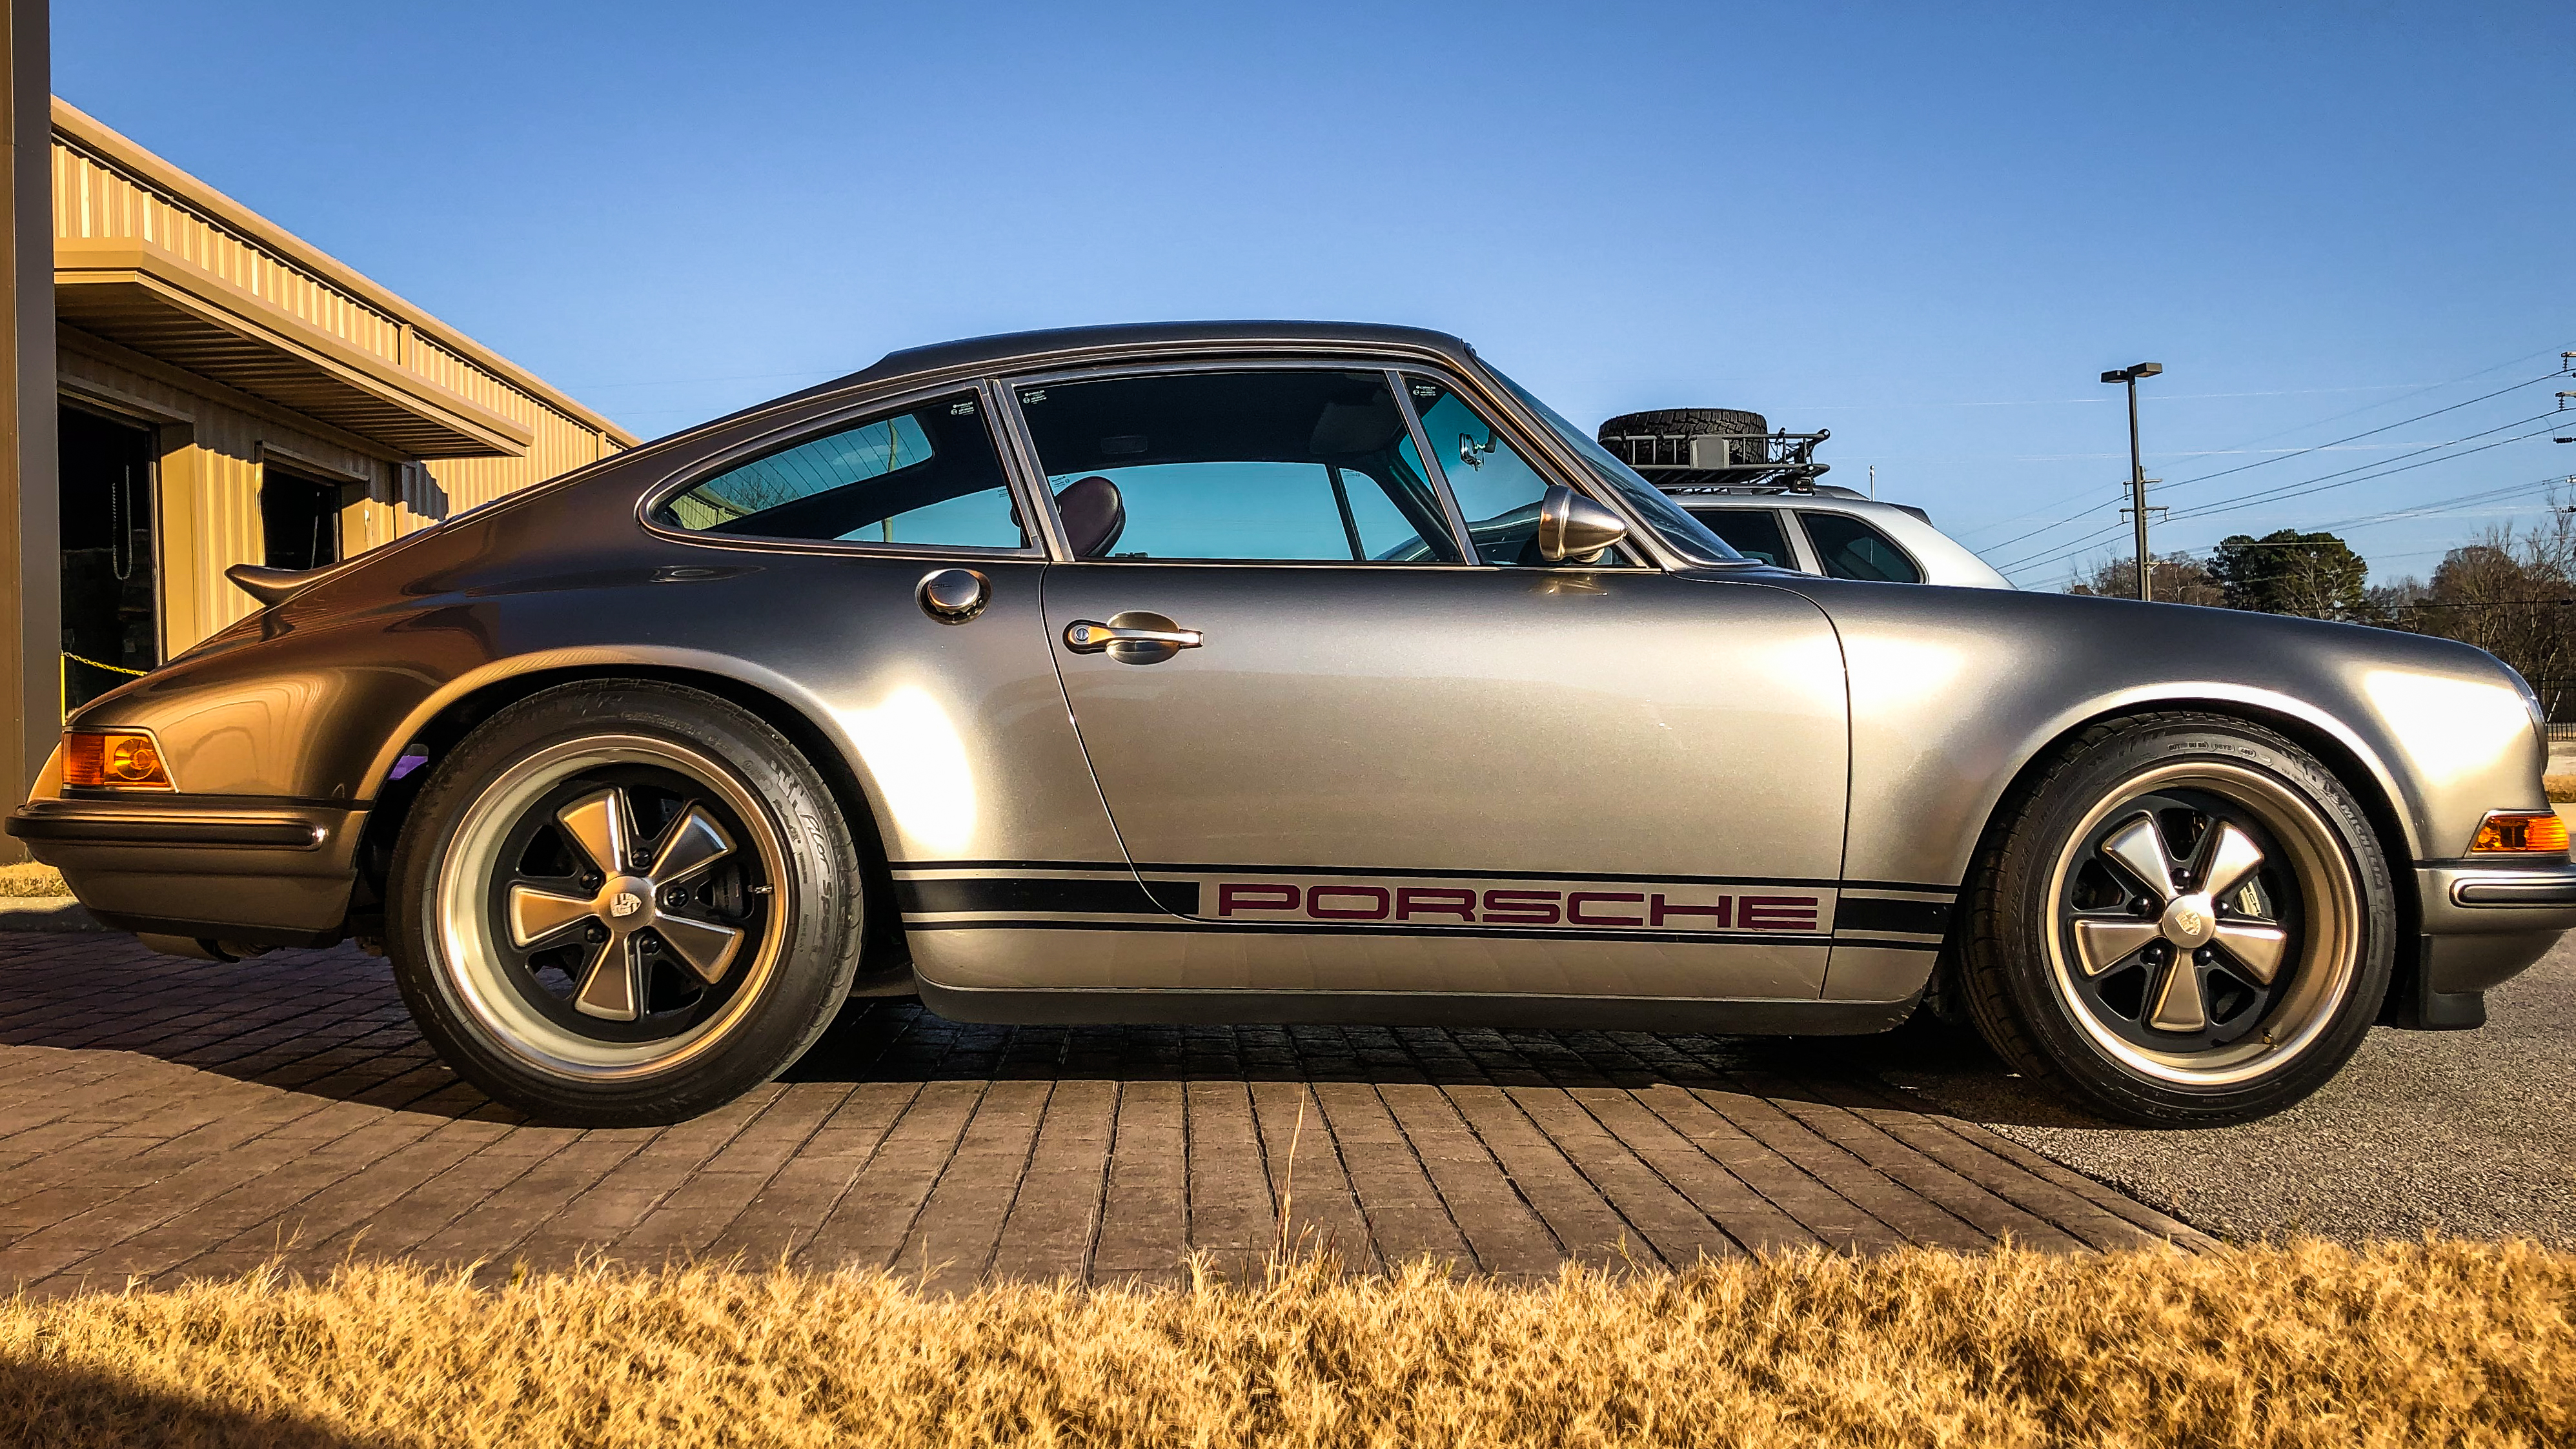 Singer 911 review The Porsche money can\u0027t buy in a hurry